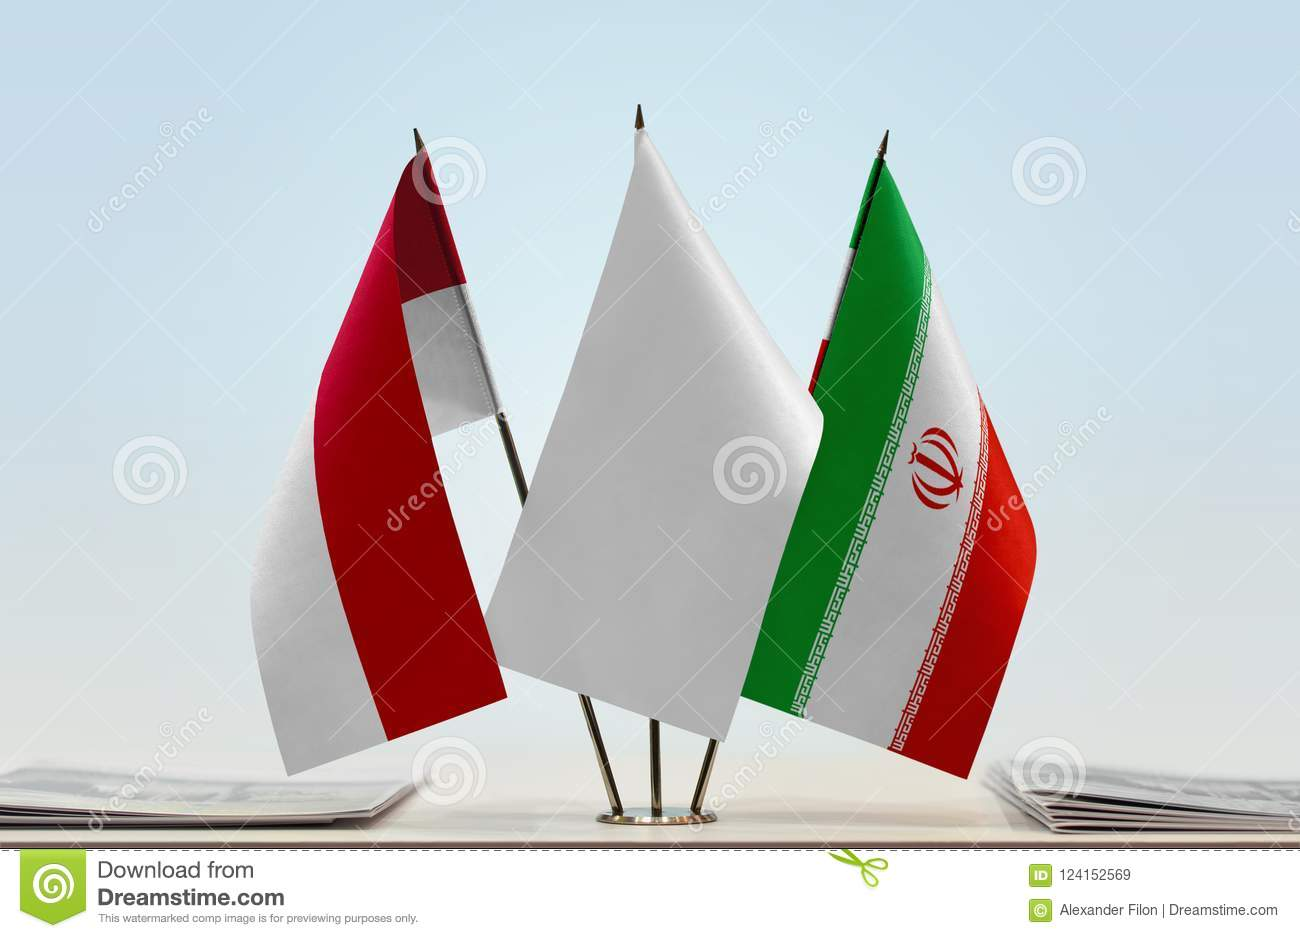 Flags of Monaco and Iran